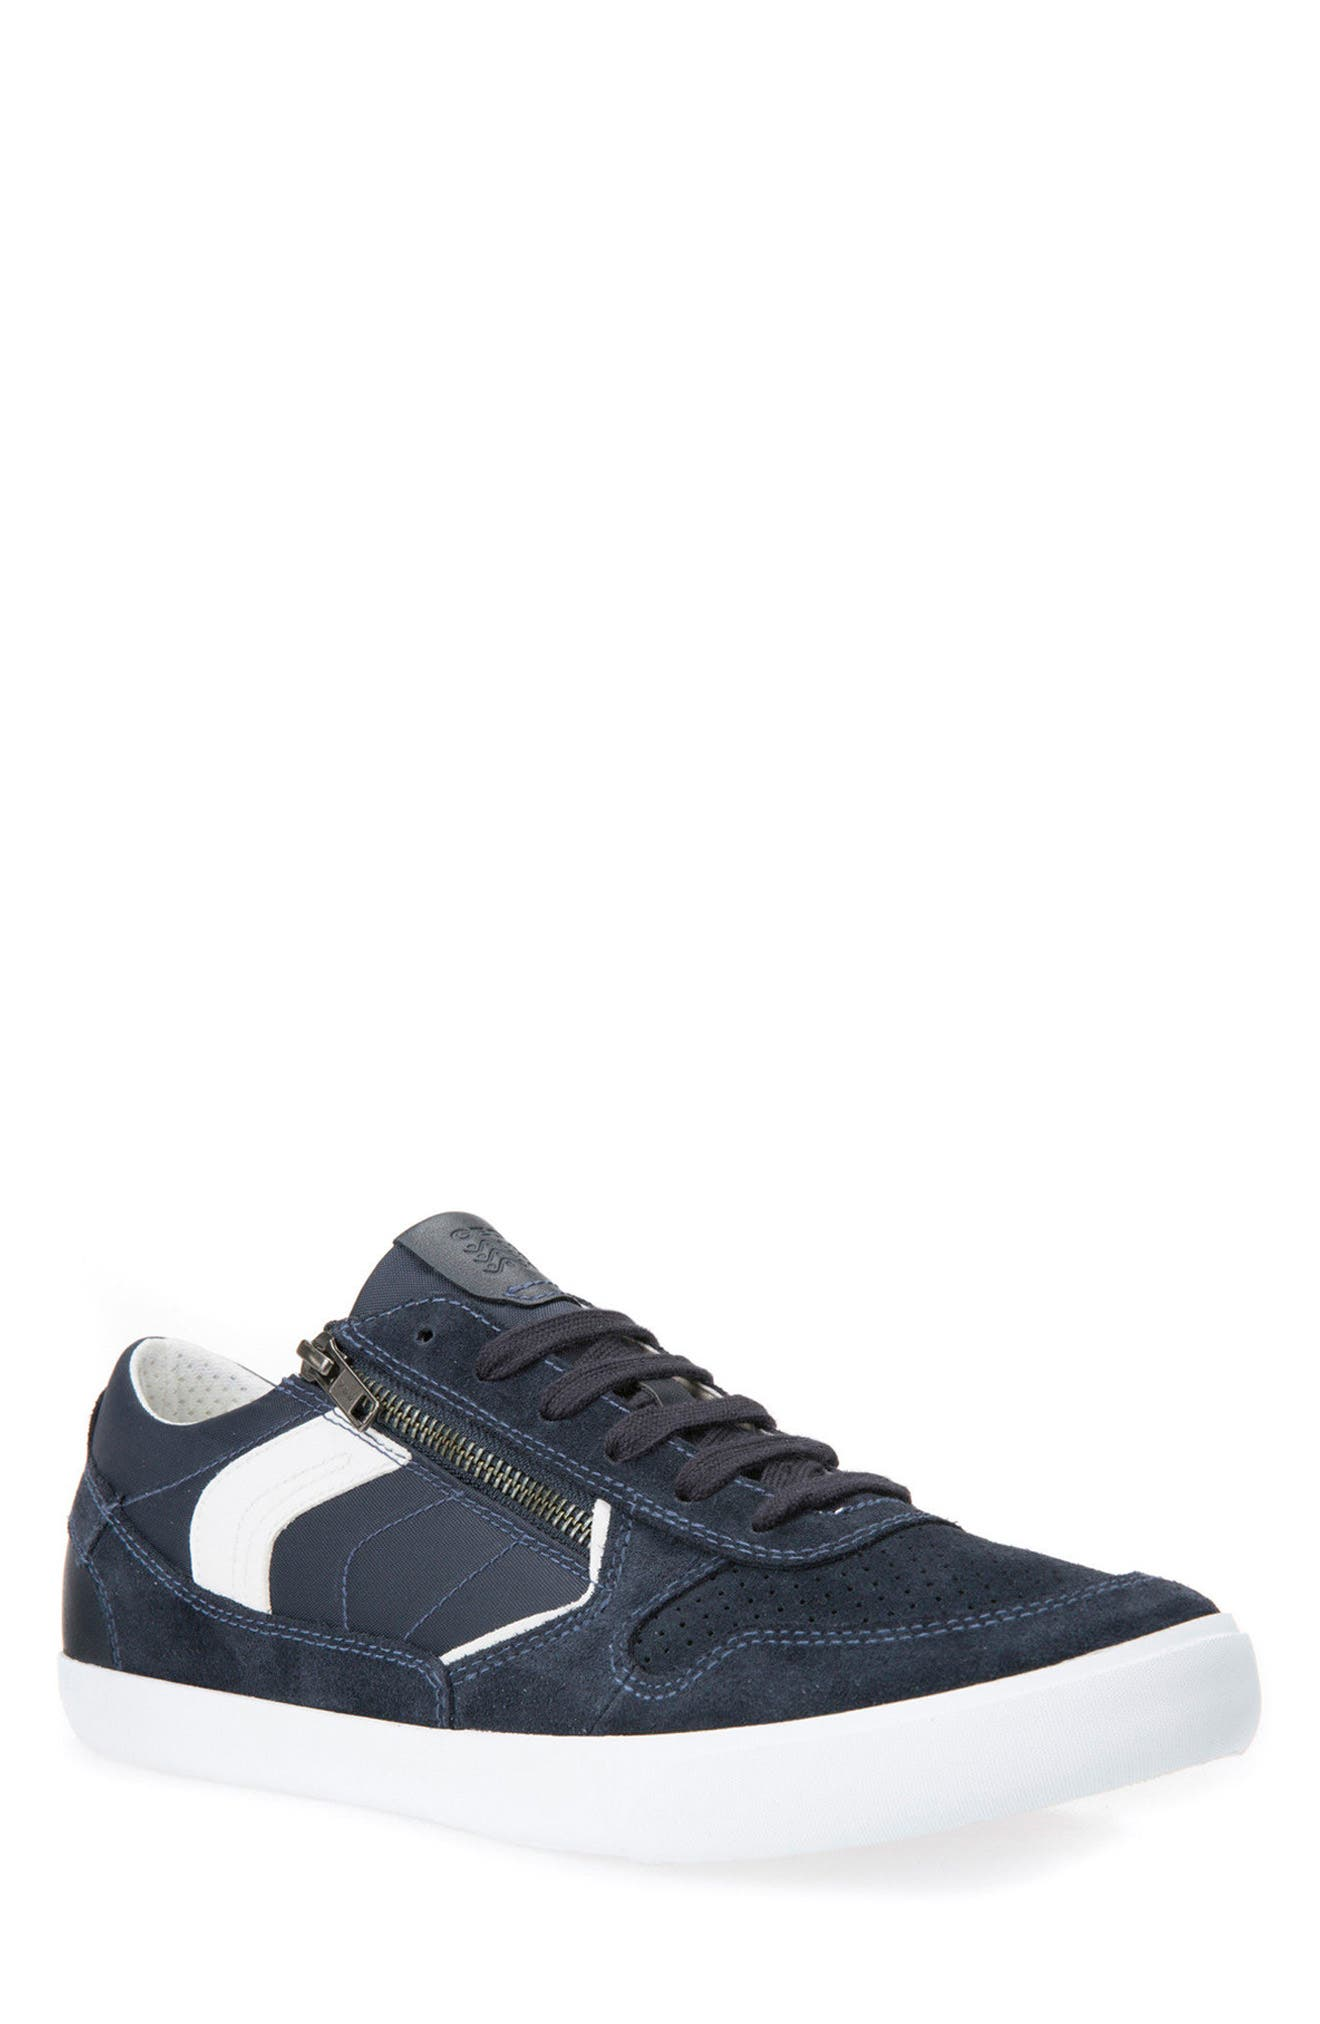 Box 33 Low Top Zip Sneaker,                             Main thumbnail 1, color,                             Navy